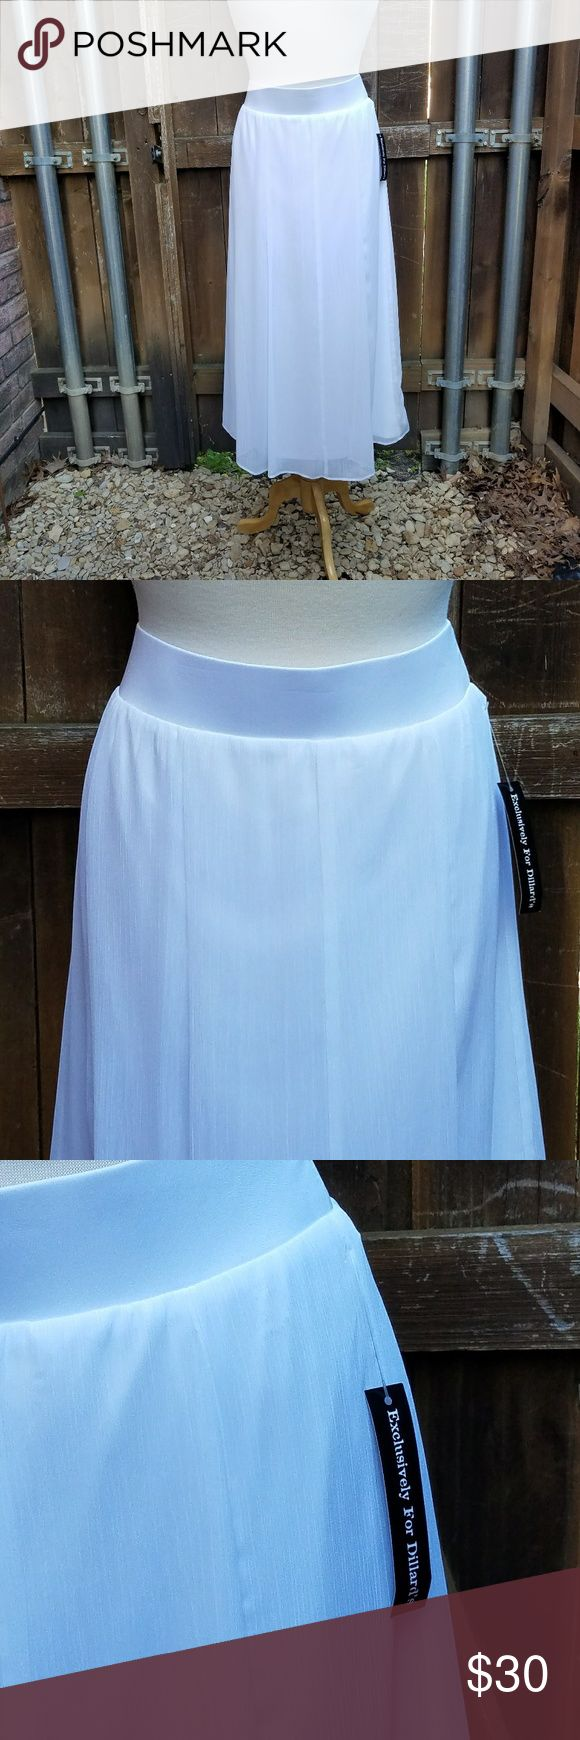 NWT Ruby Rd White Chiffon Pull On Long Skirt 1X Size 1X  White Chiffon Lined Skirt Elastic Waistband 100% Polyester  Measurements Waist is 40 inches unstretched Length of skirt is 34 inches Ruby Rd Skirts